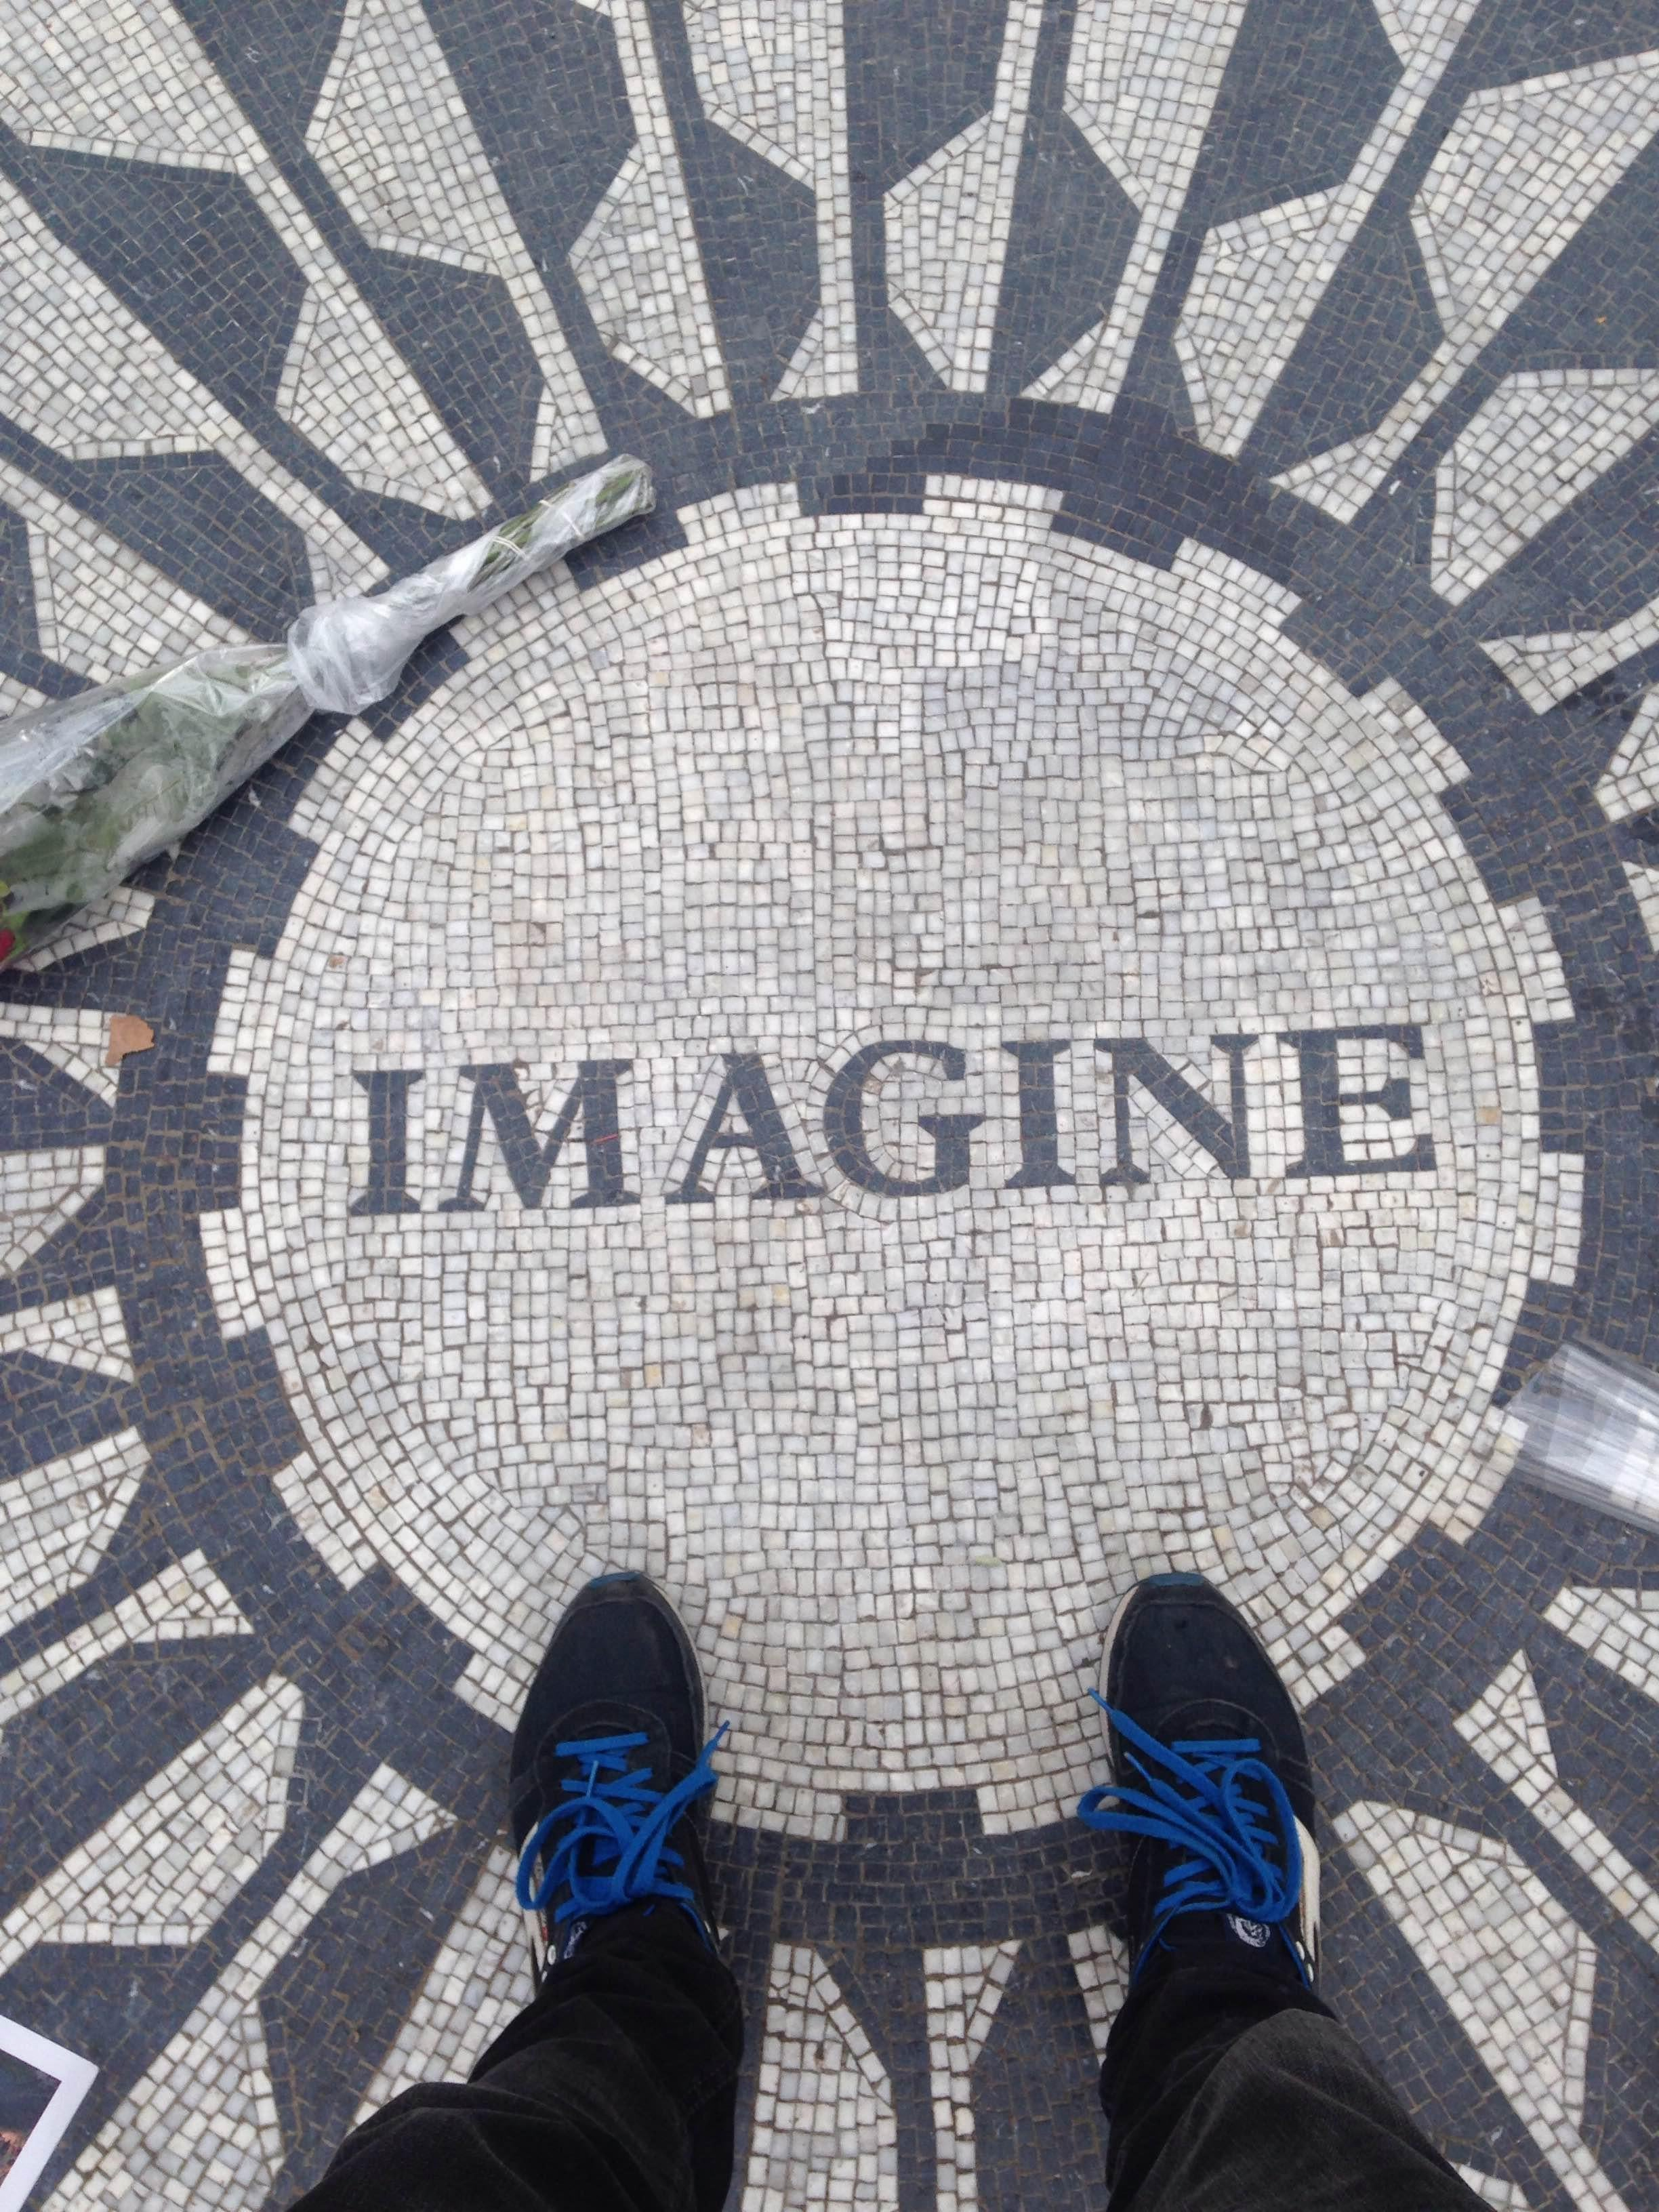 Suelo en Strawberry Fields - monumento a John Lennon